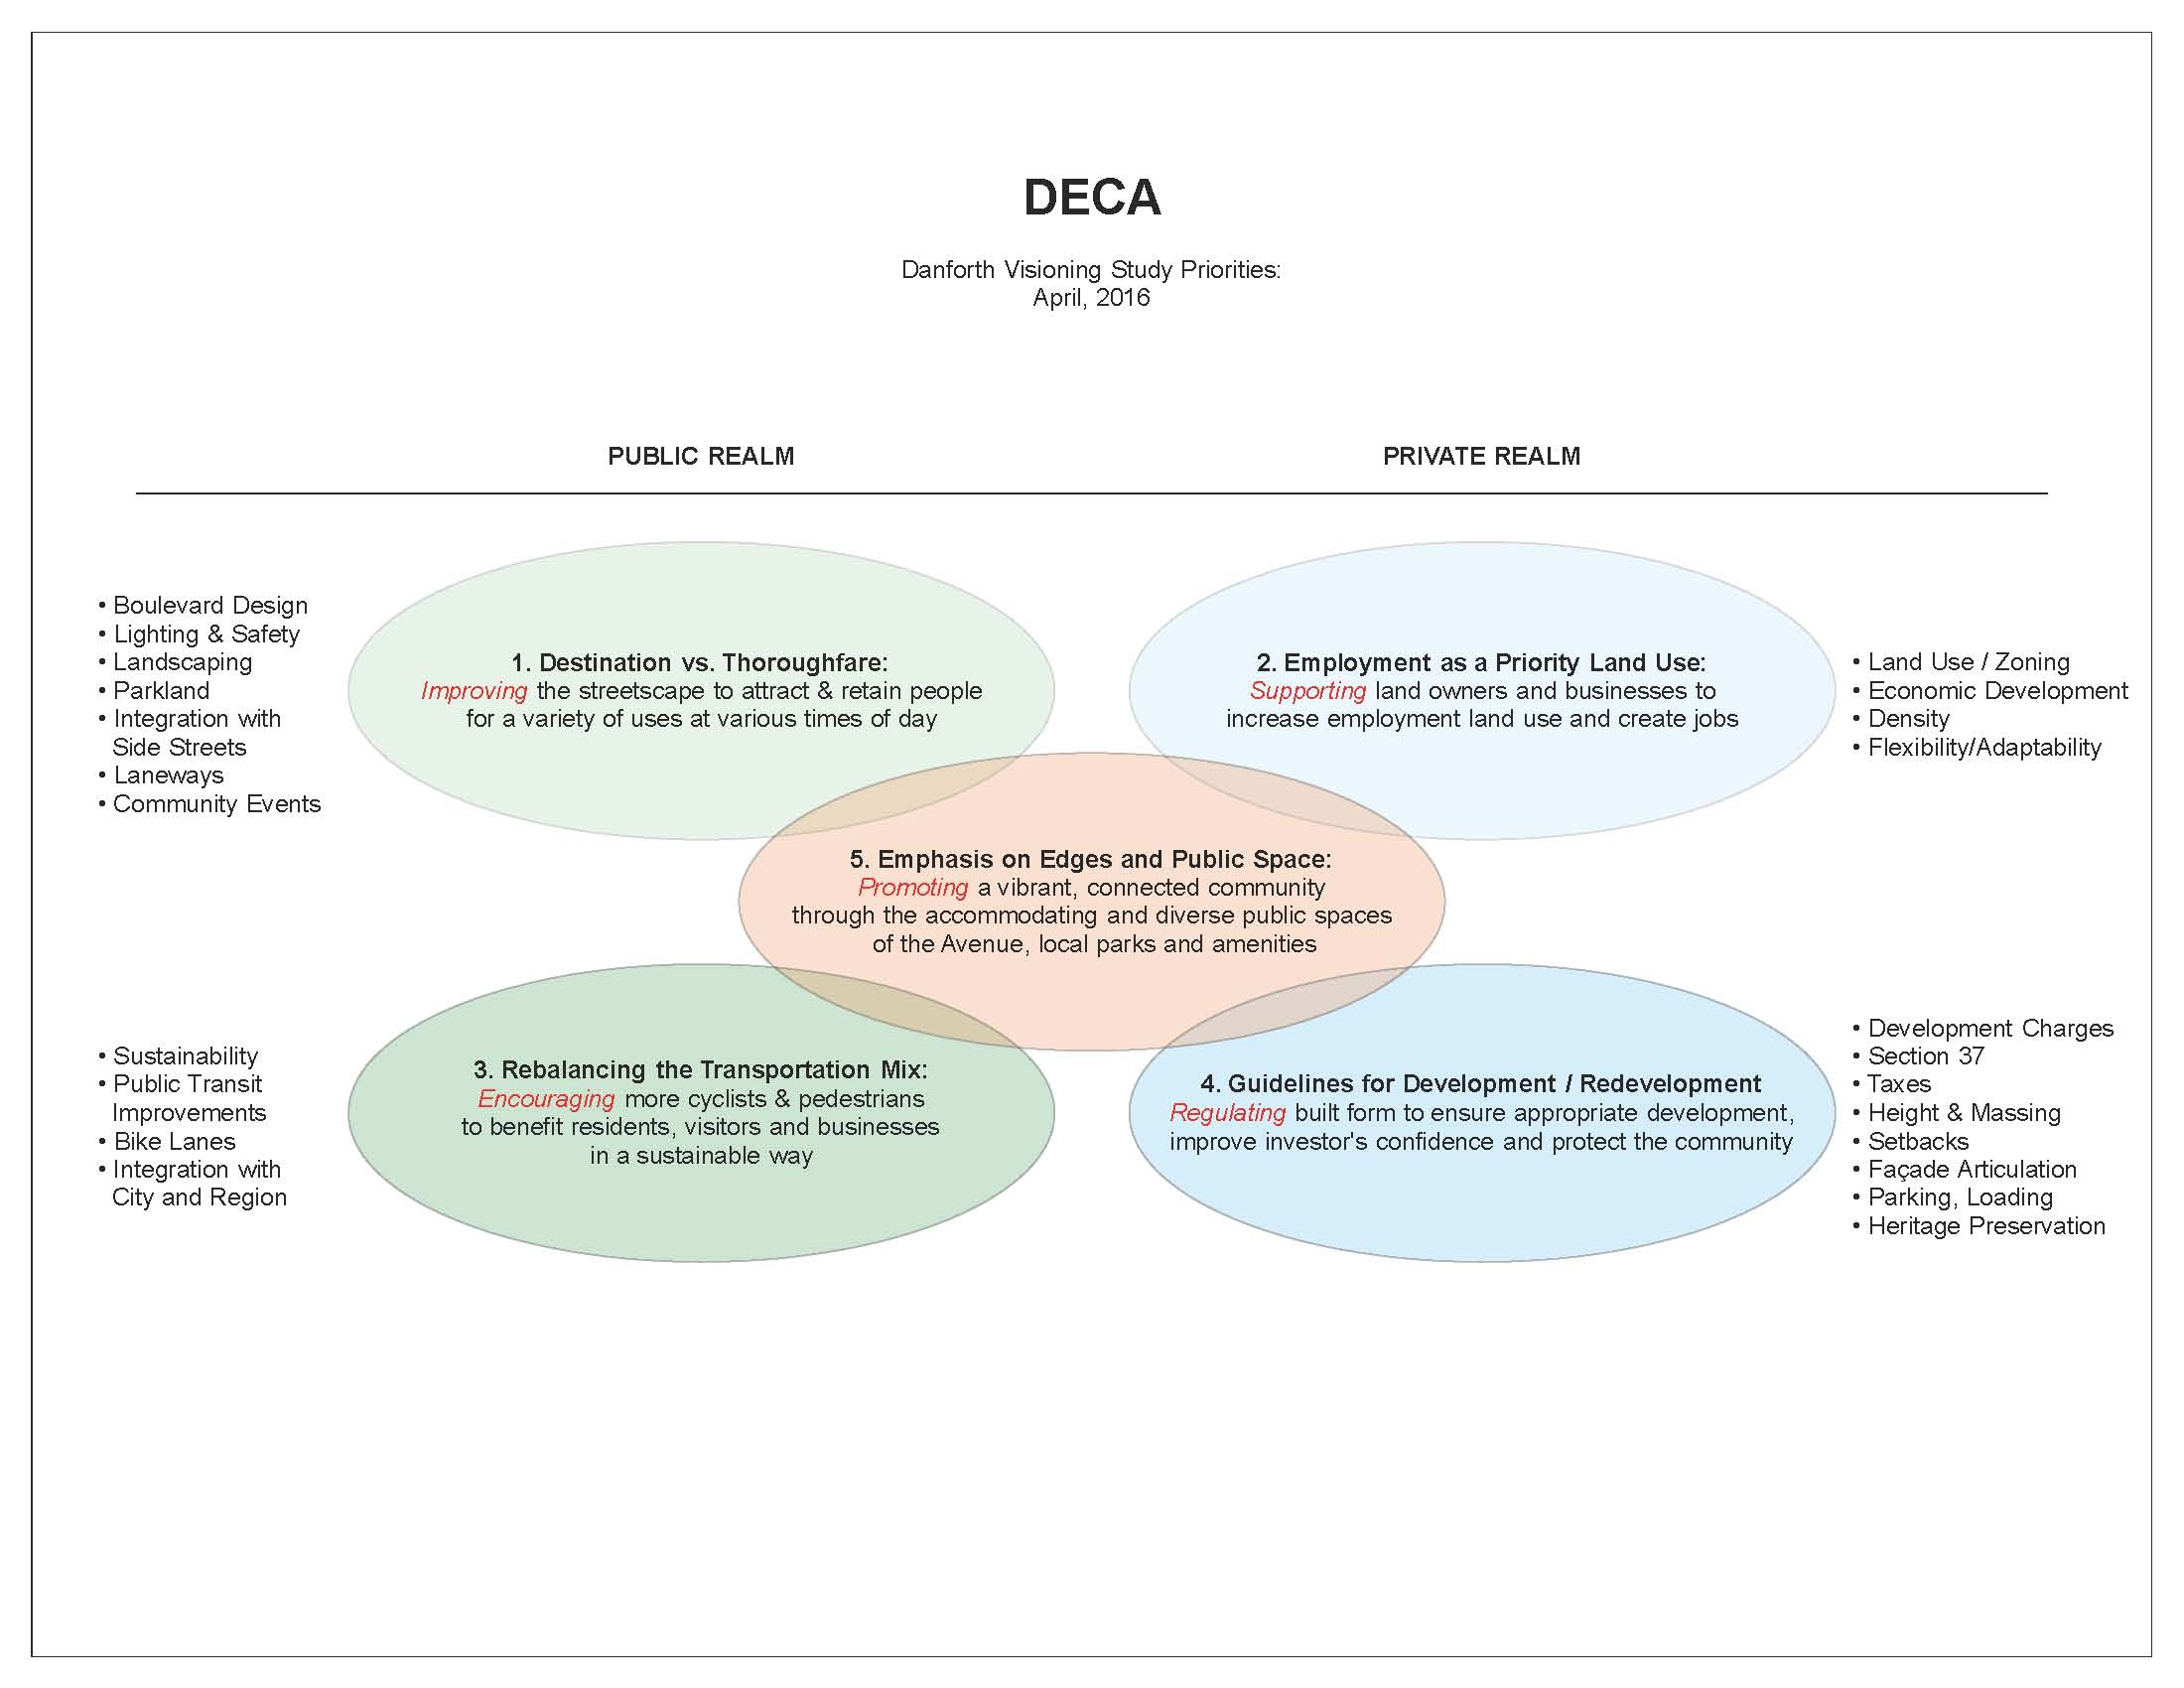 A graffic developed by DECA regarding our Danforth Ave Study Priorities